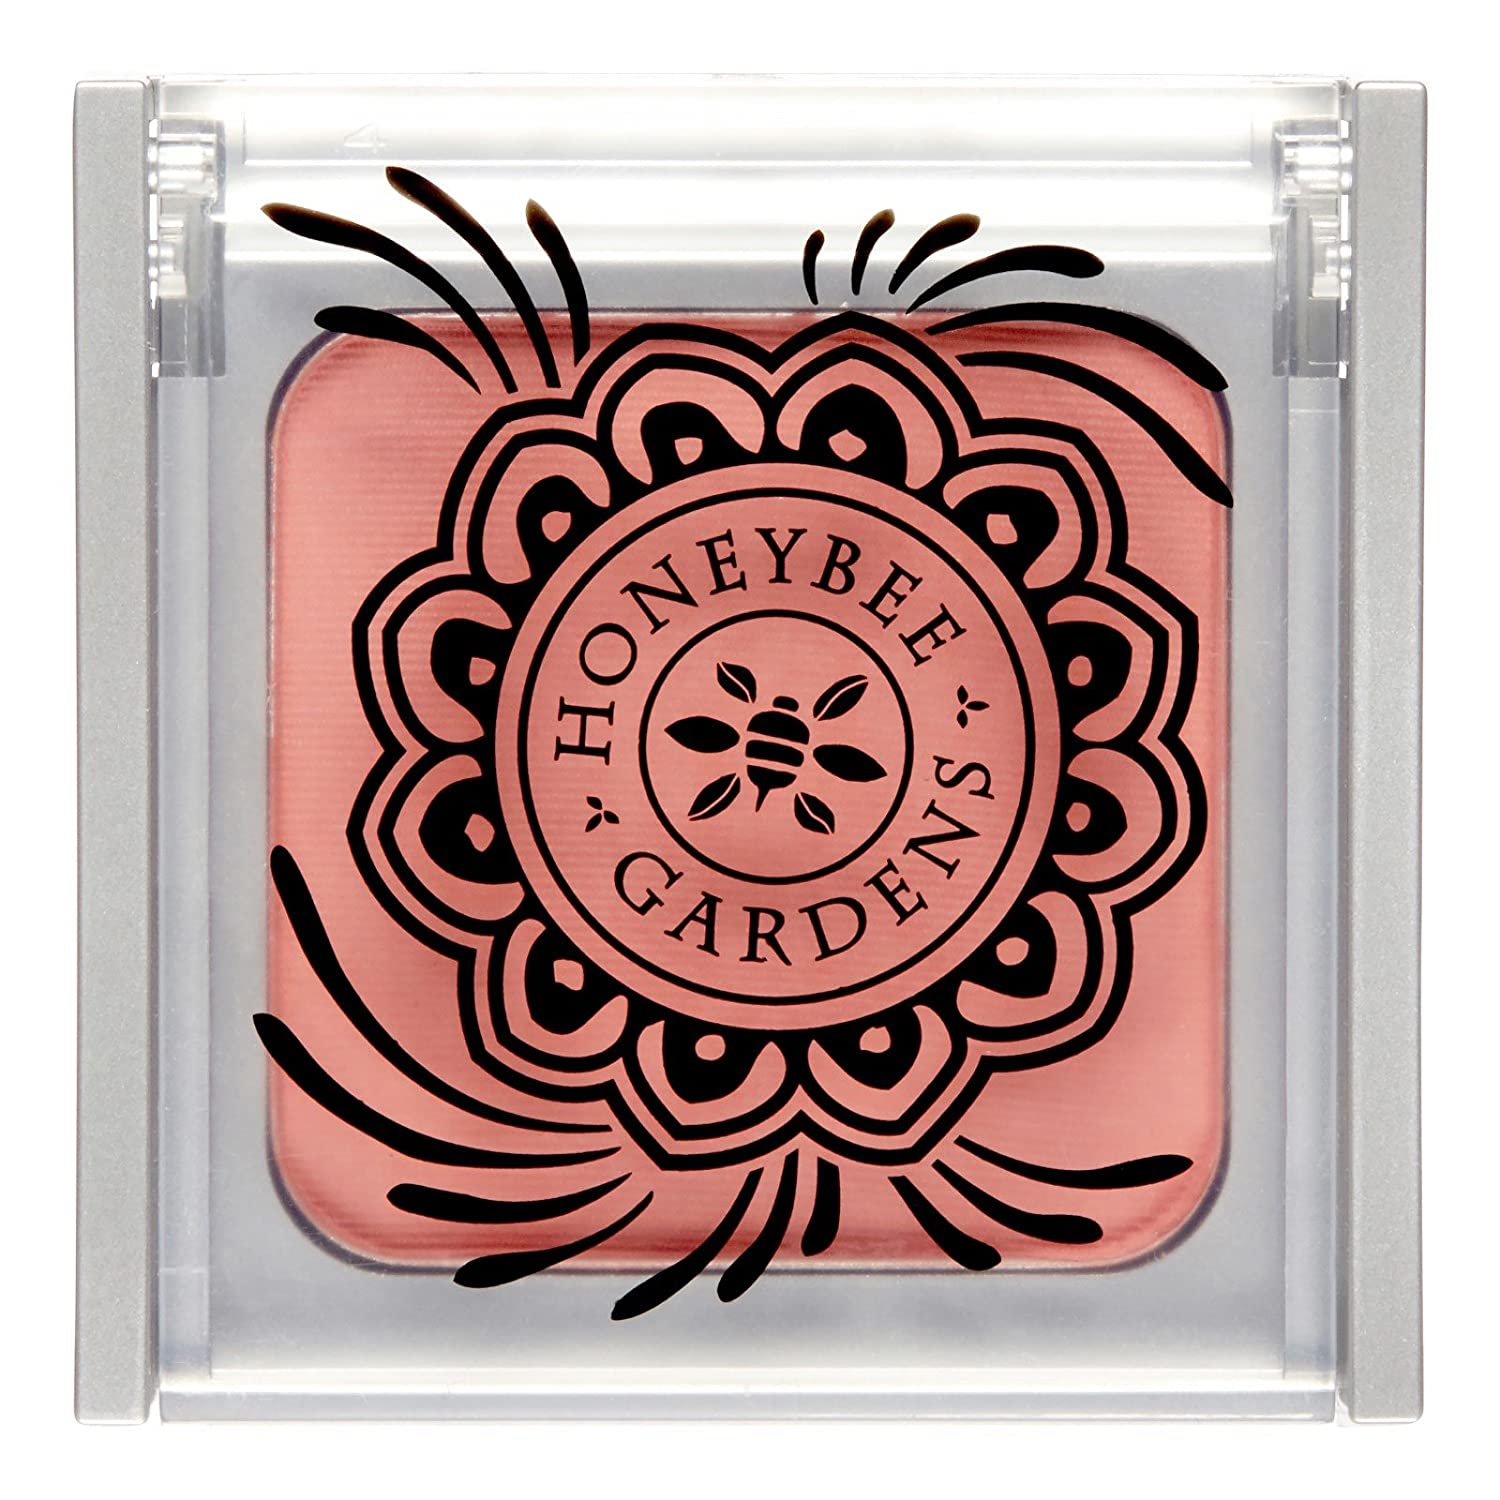 Honeybee Gardens Complexion Perfecting Blush, Tryst